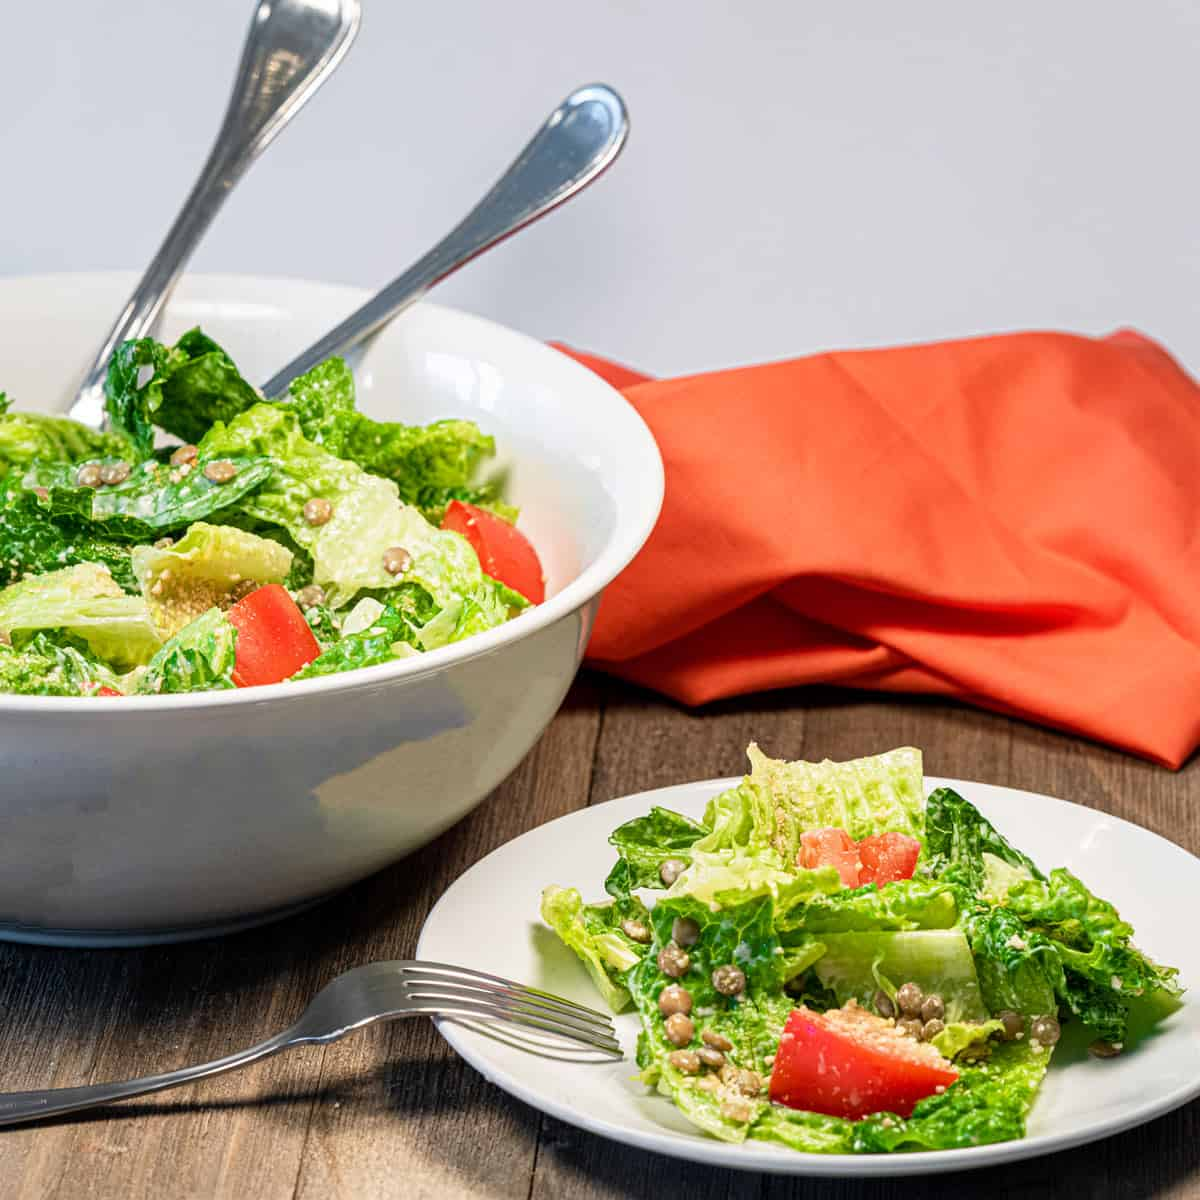 A plate of vegan caesar salad with a bowl of it in the background.